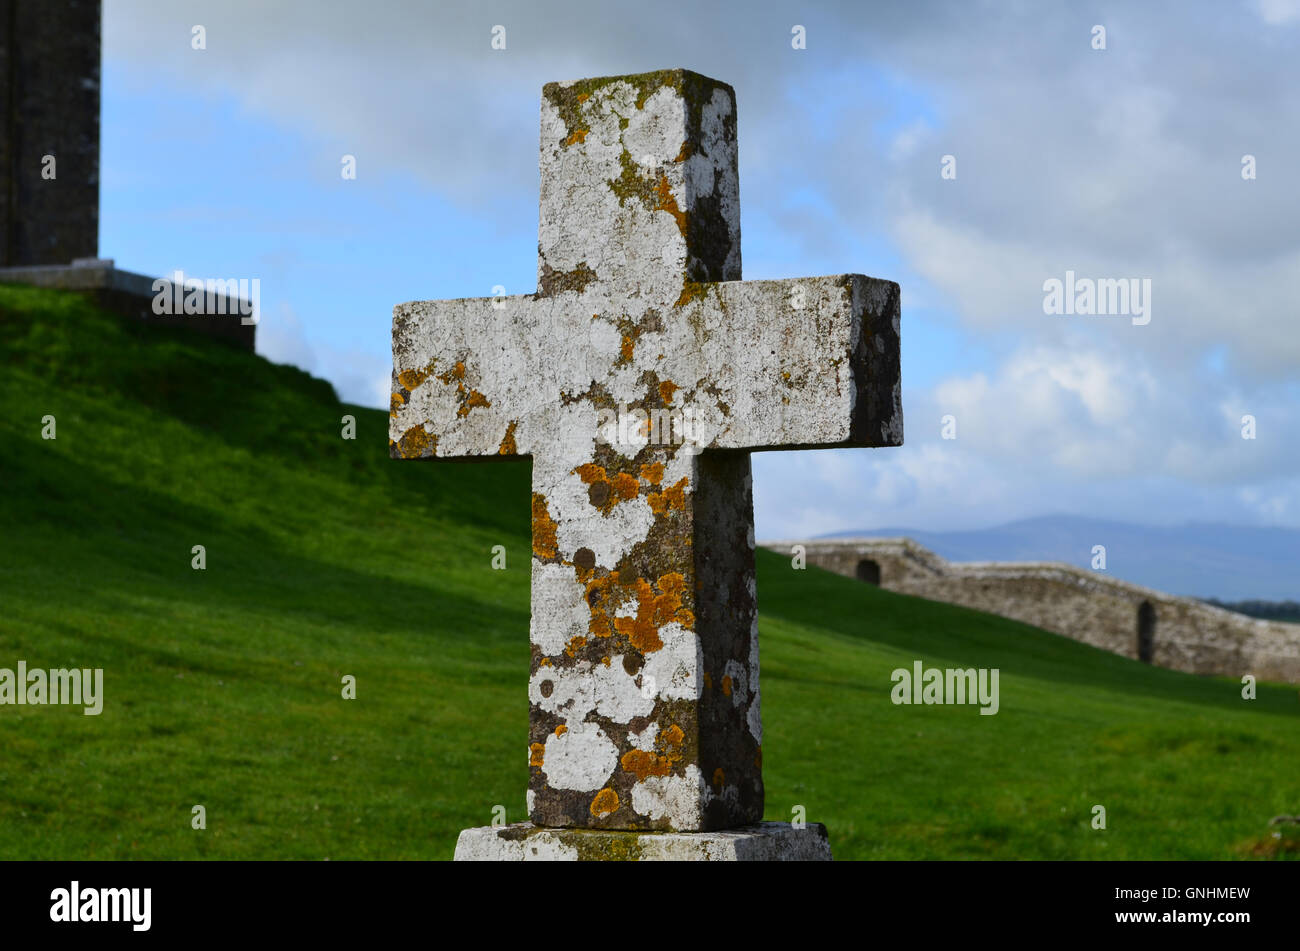 Old stone cross in Ireland with lichen growing on it in Ireland. Stock Photo